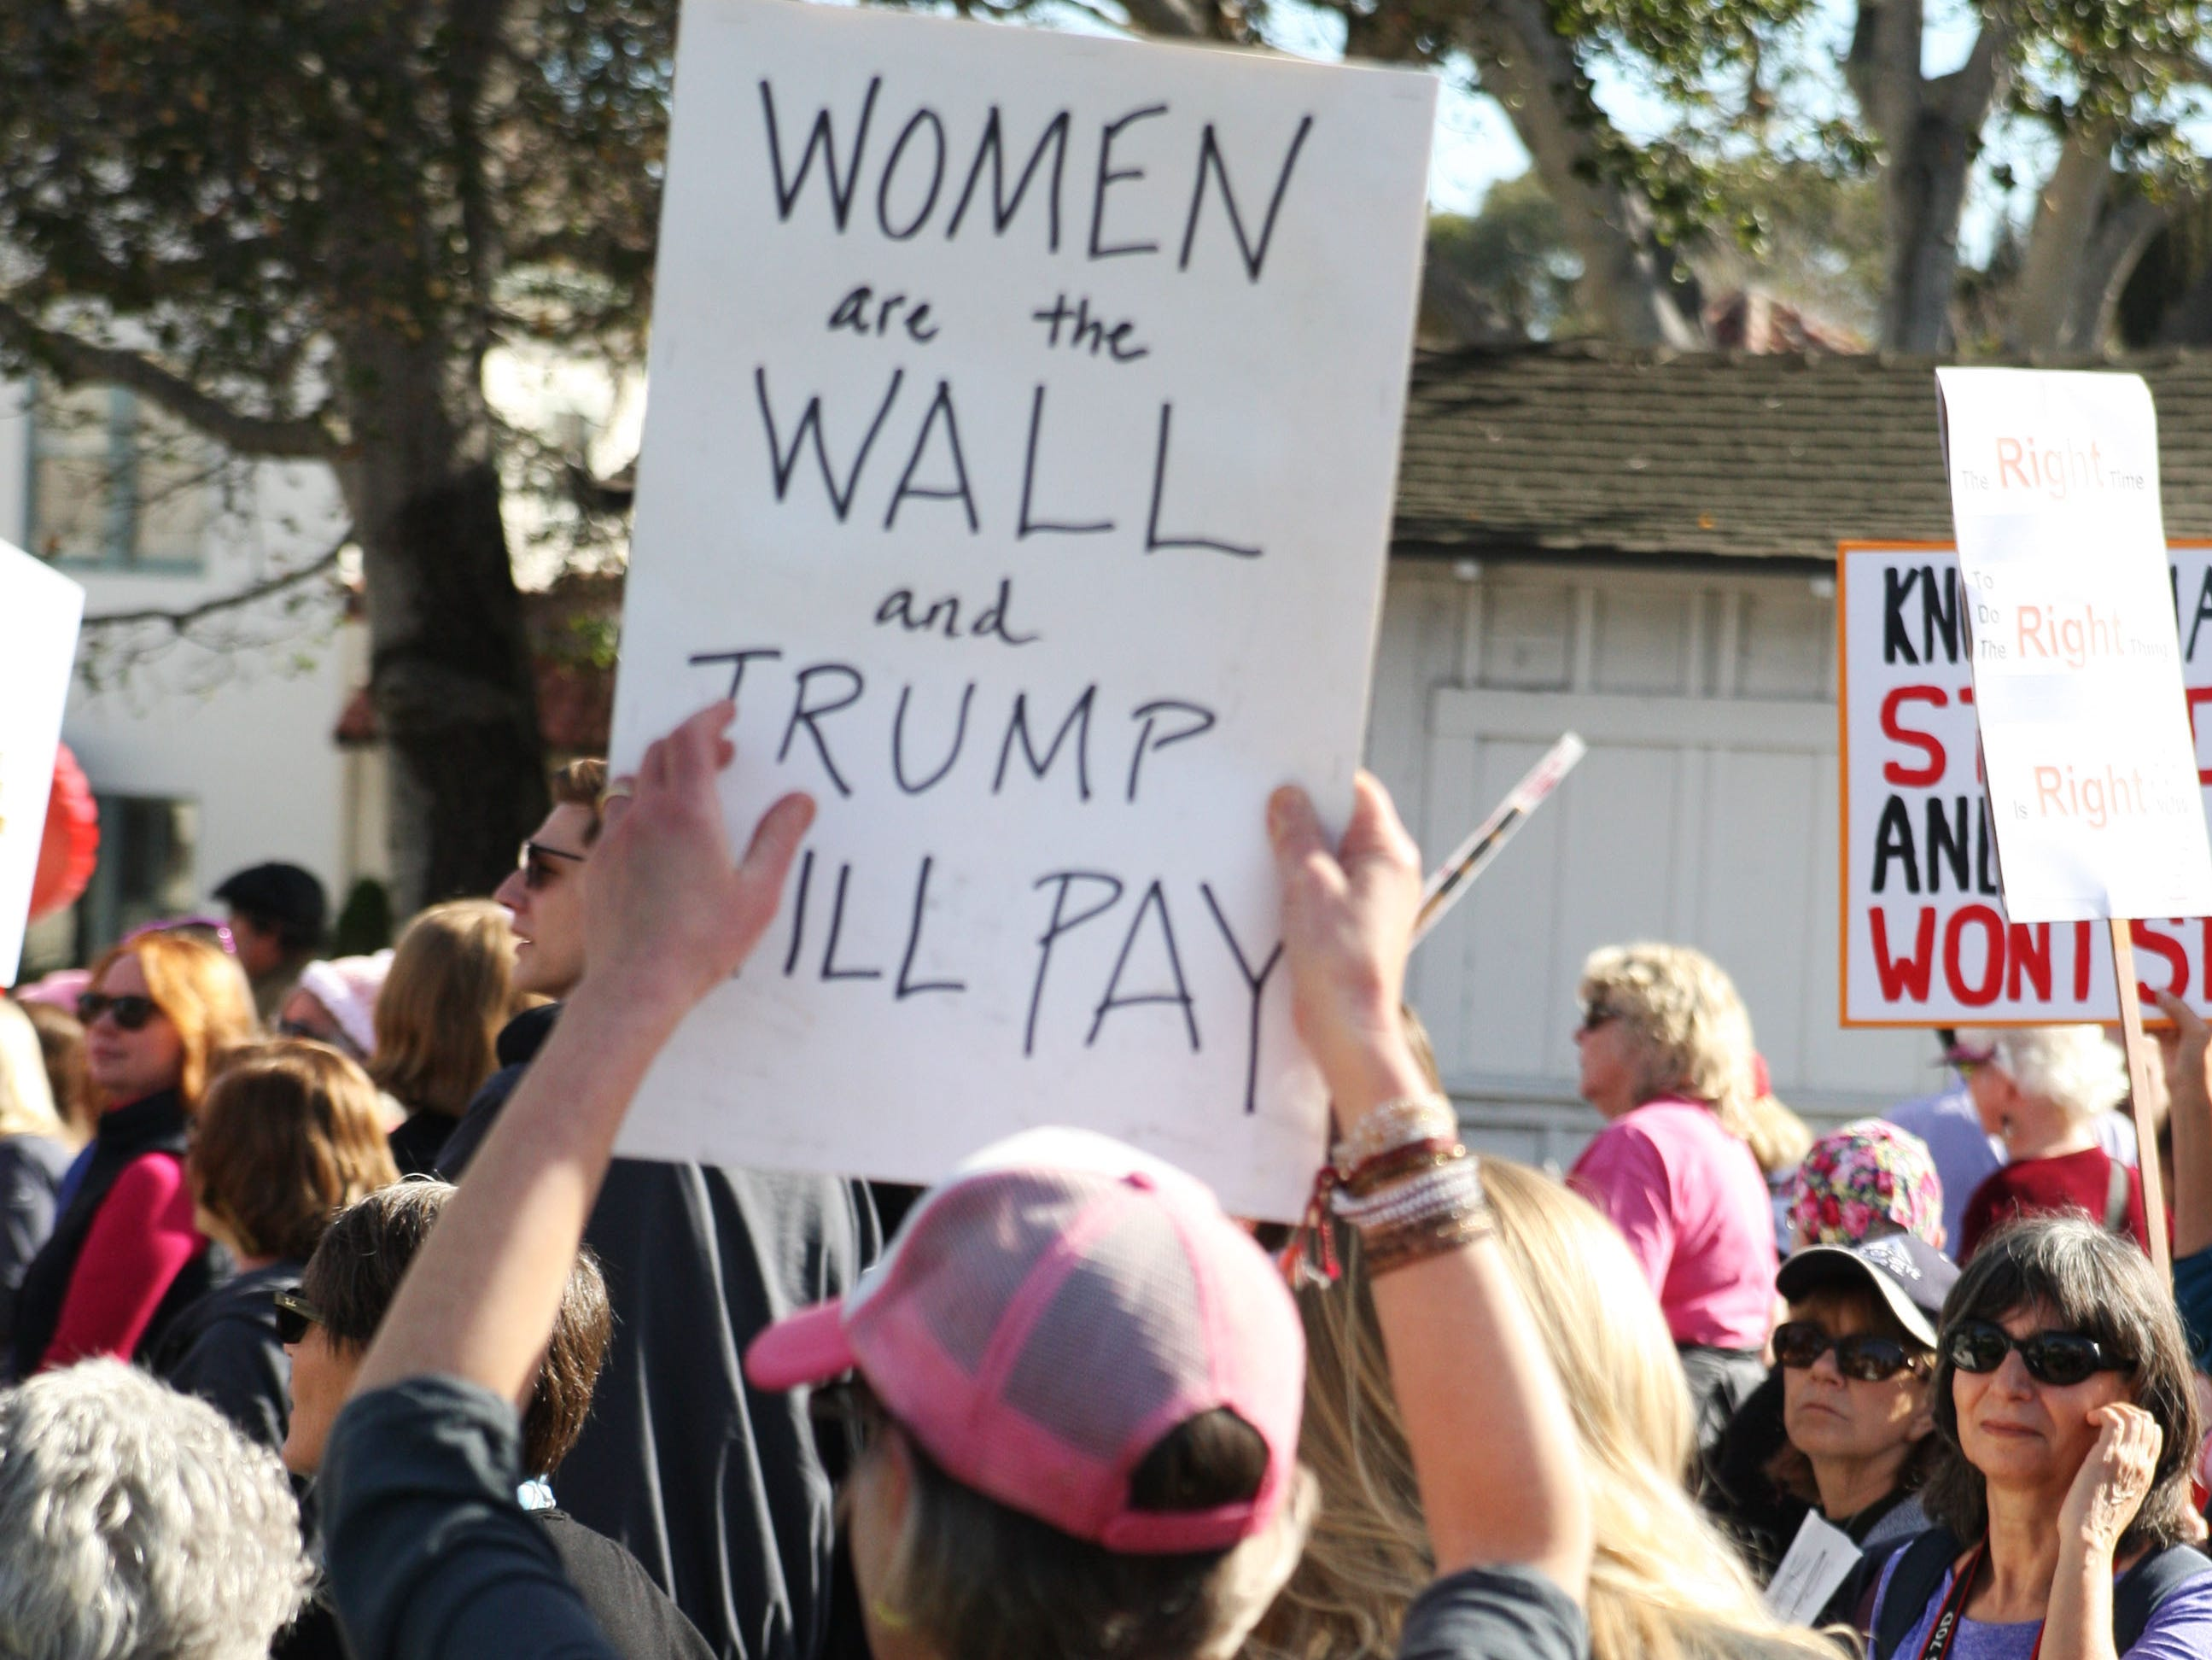 """A woman holds a sign that reads: """"Women are the wall and Trump will pay."""""""